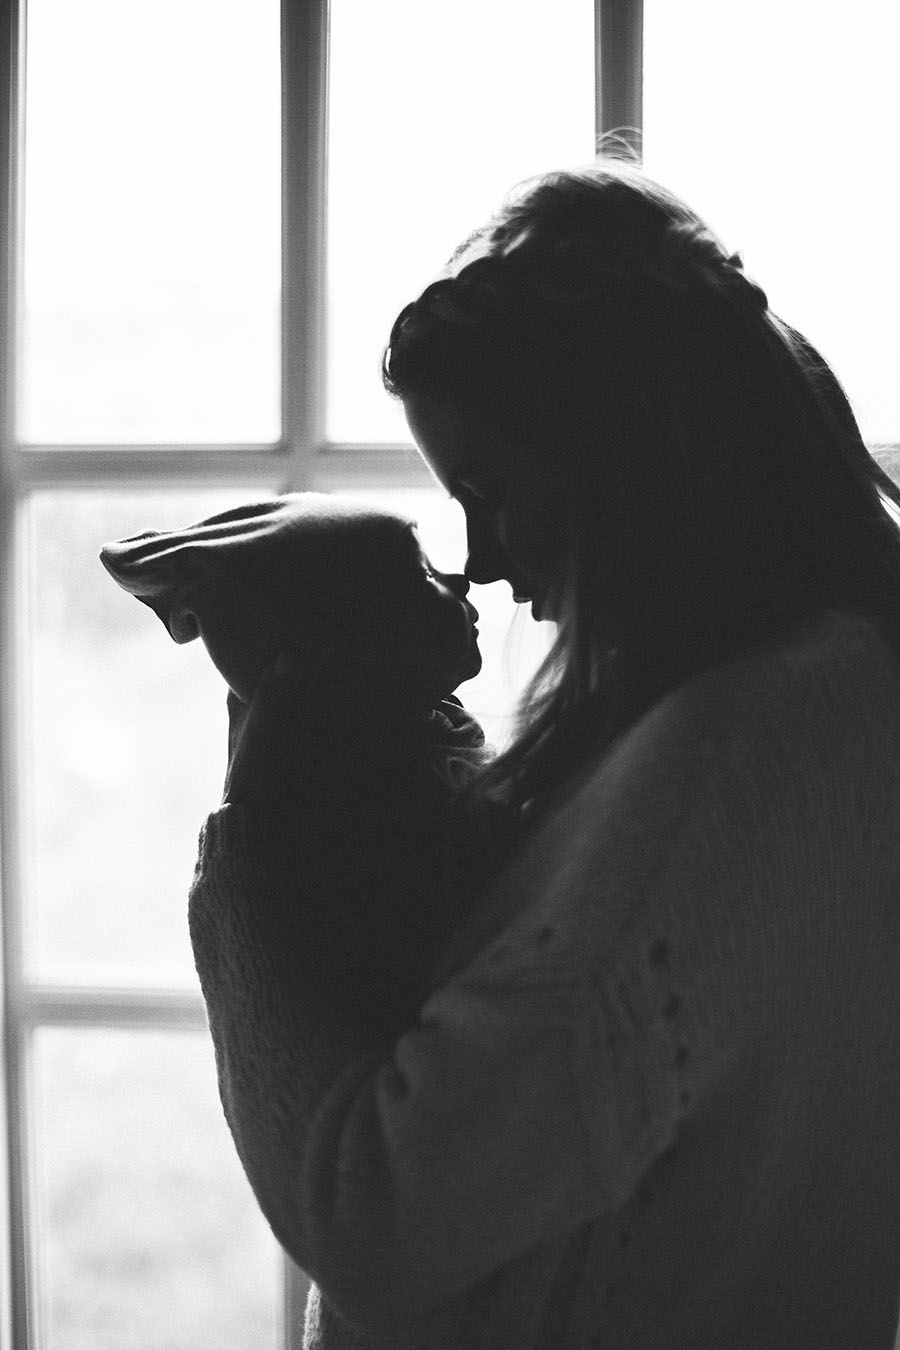 Mother and child baby black and white standing in front if window little cap hat cable knit sweater